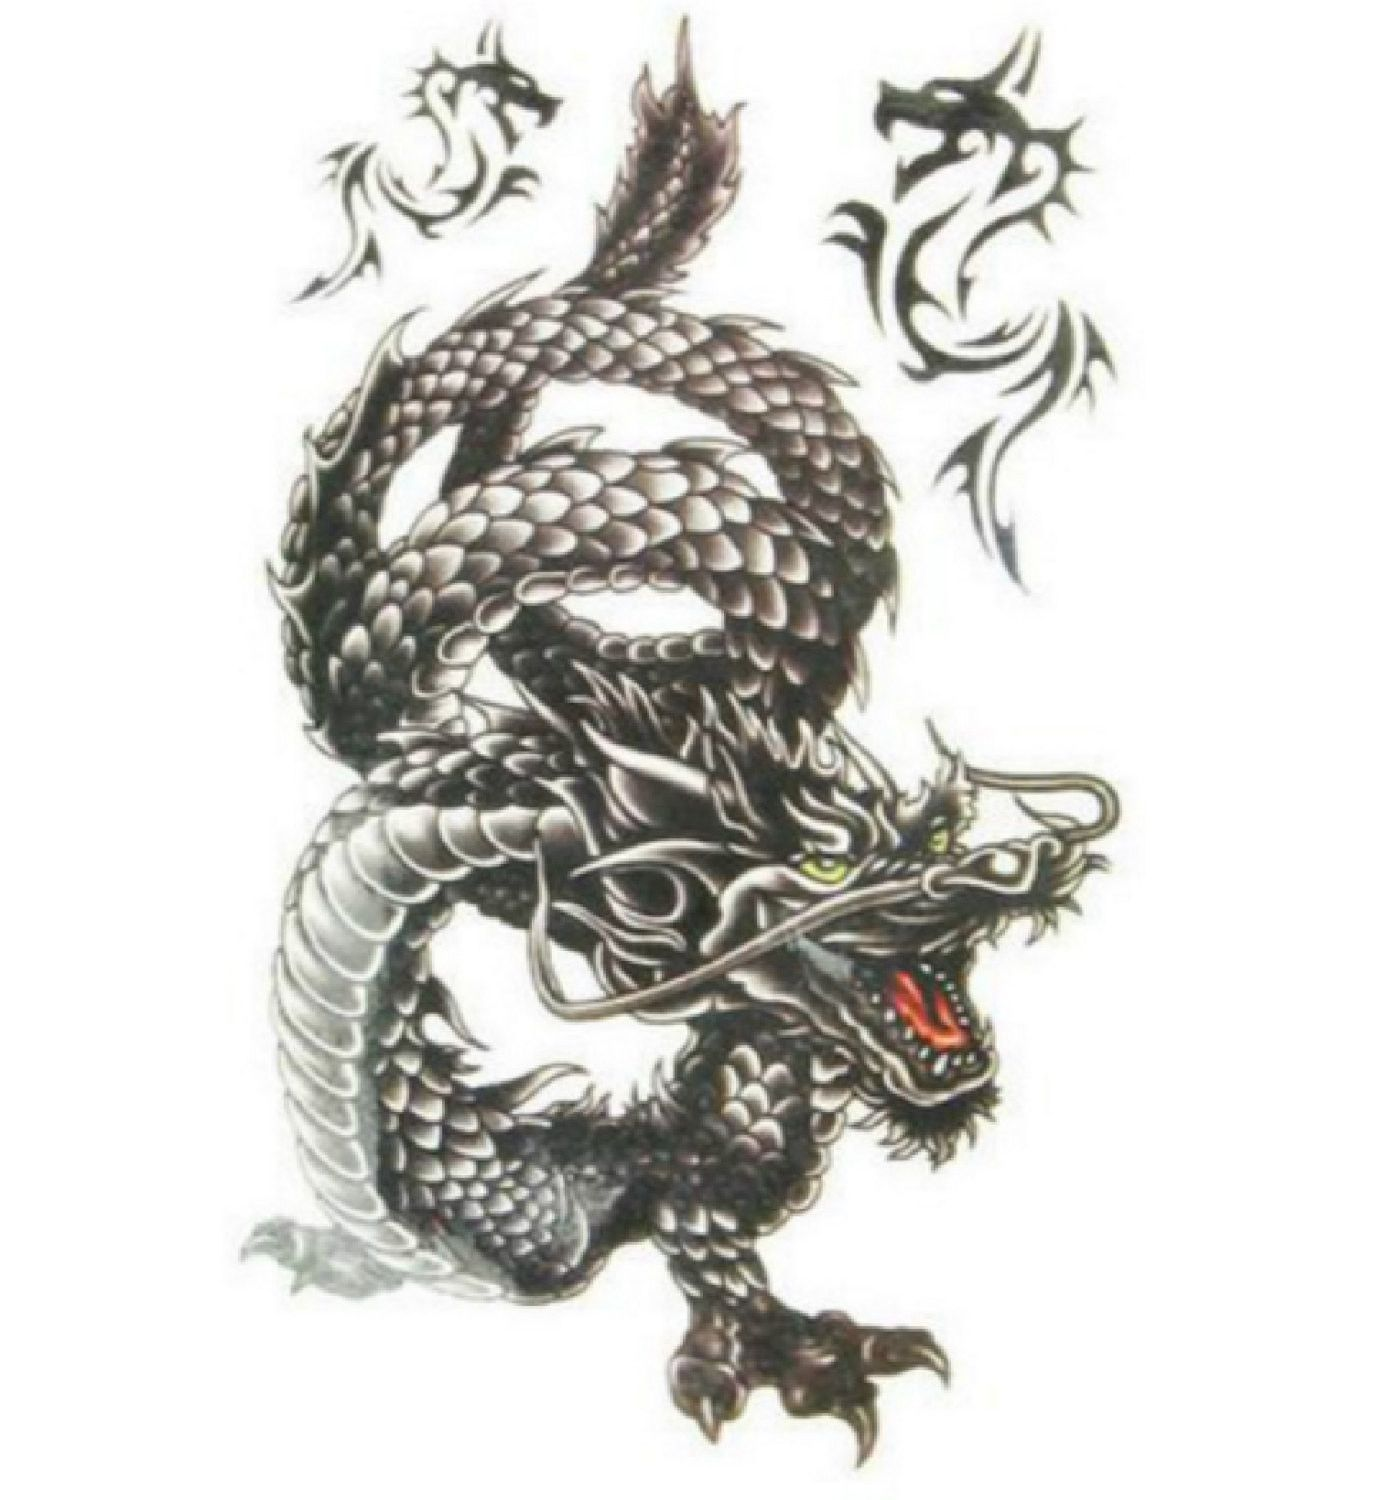 Dragon Temporary Tattoo My Soul Pinterest Tattoos Pin Basic Plant Cell Diagram Pelautscom On Sleeve Arm Black And White Fake Tribal Large Asian Thai Gangster Thug Triad